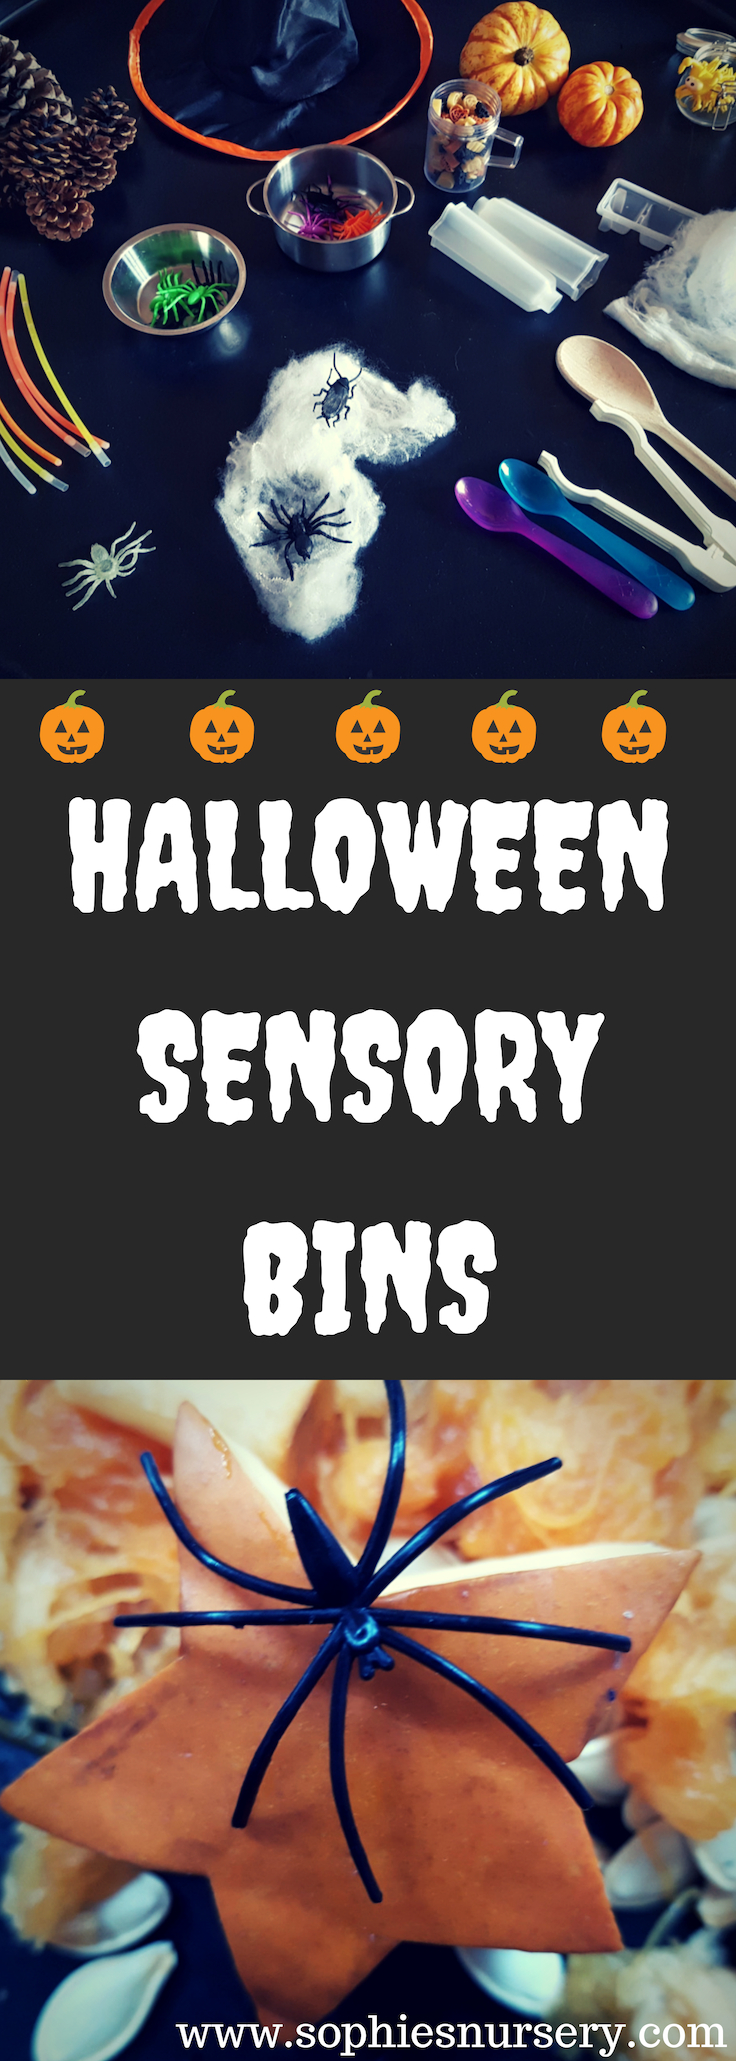 Take a look out these super easy Halloween sensory bins! They're so simple to make & provide hours of #Halloween themed fun & learning opportunities.  #parenting #kidsactivities #toddlers #sensoryplay #imaginativeplay #roleplay #kidsgames #spooky #tufftray #pumpkin